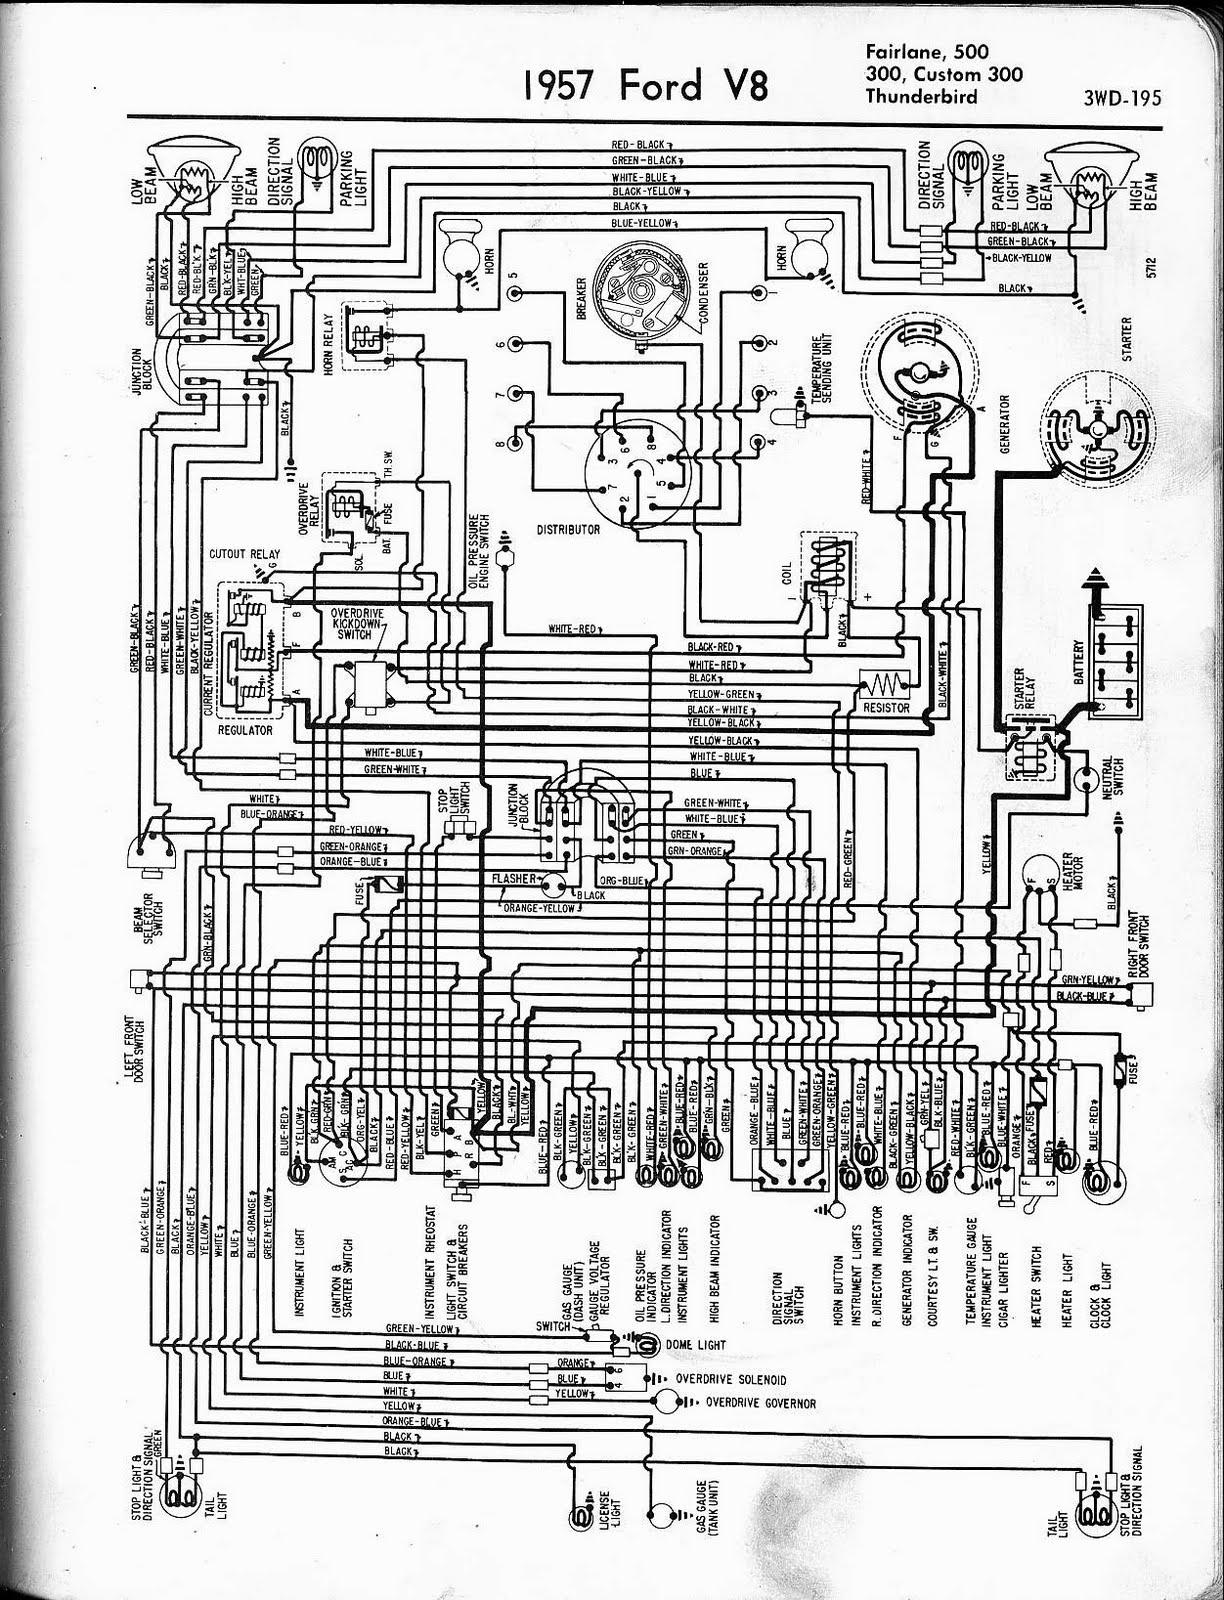 free auto wiring diagram 1957 ford v8 fairlane custom300 crown vic fuse diagram 2006 ford crown [ 1224 x 1600 Pixel ]